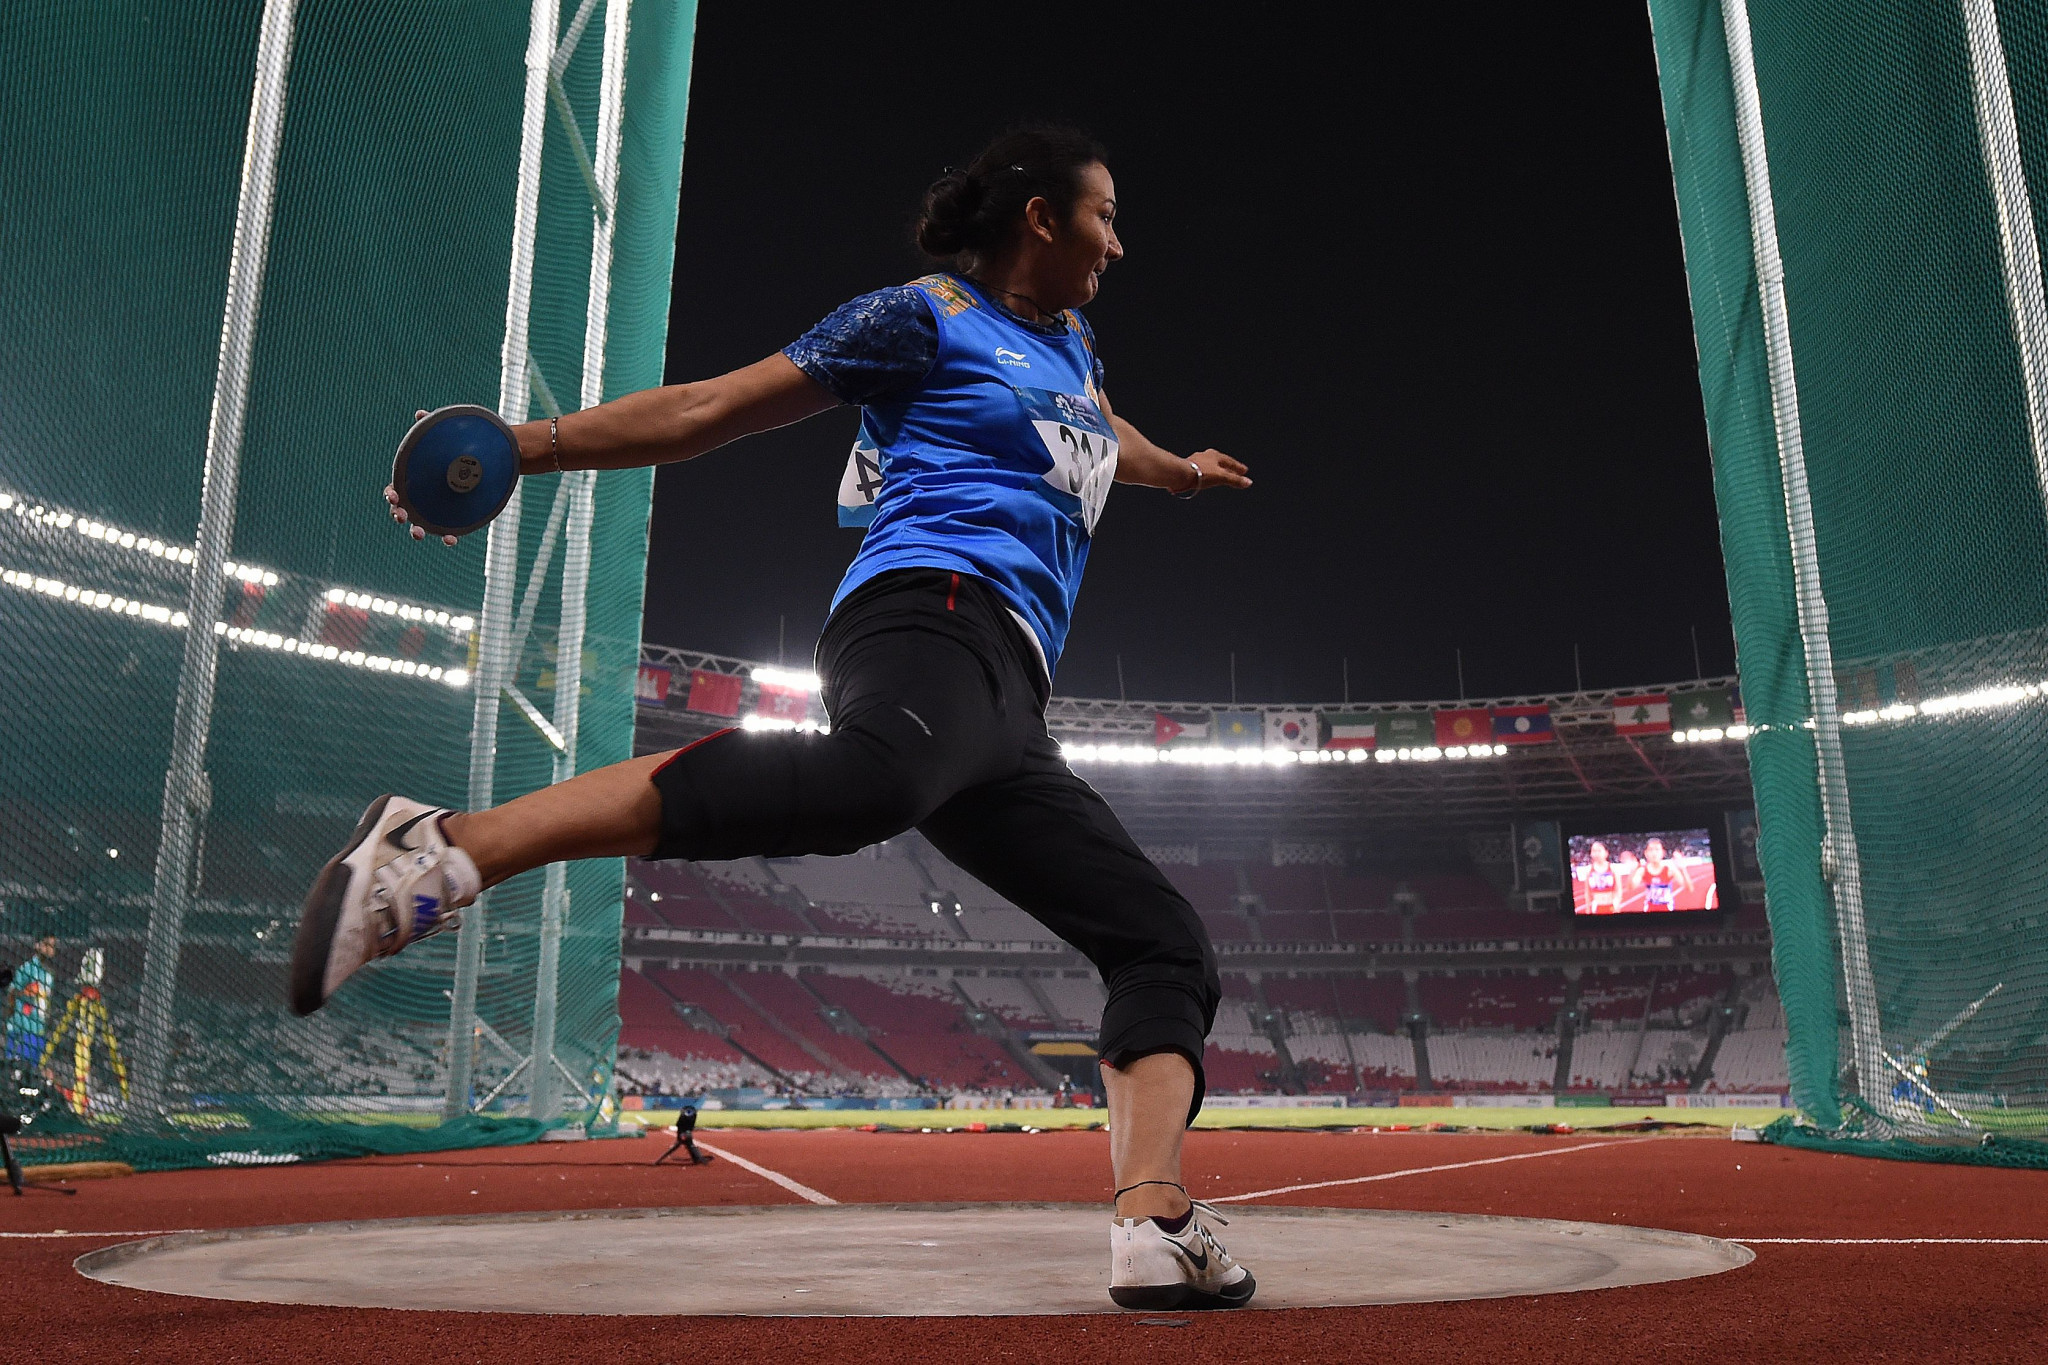 Indian discus thrower Kumari hit with four-year ban for failing doping test